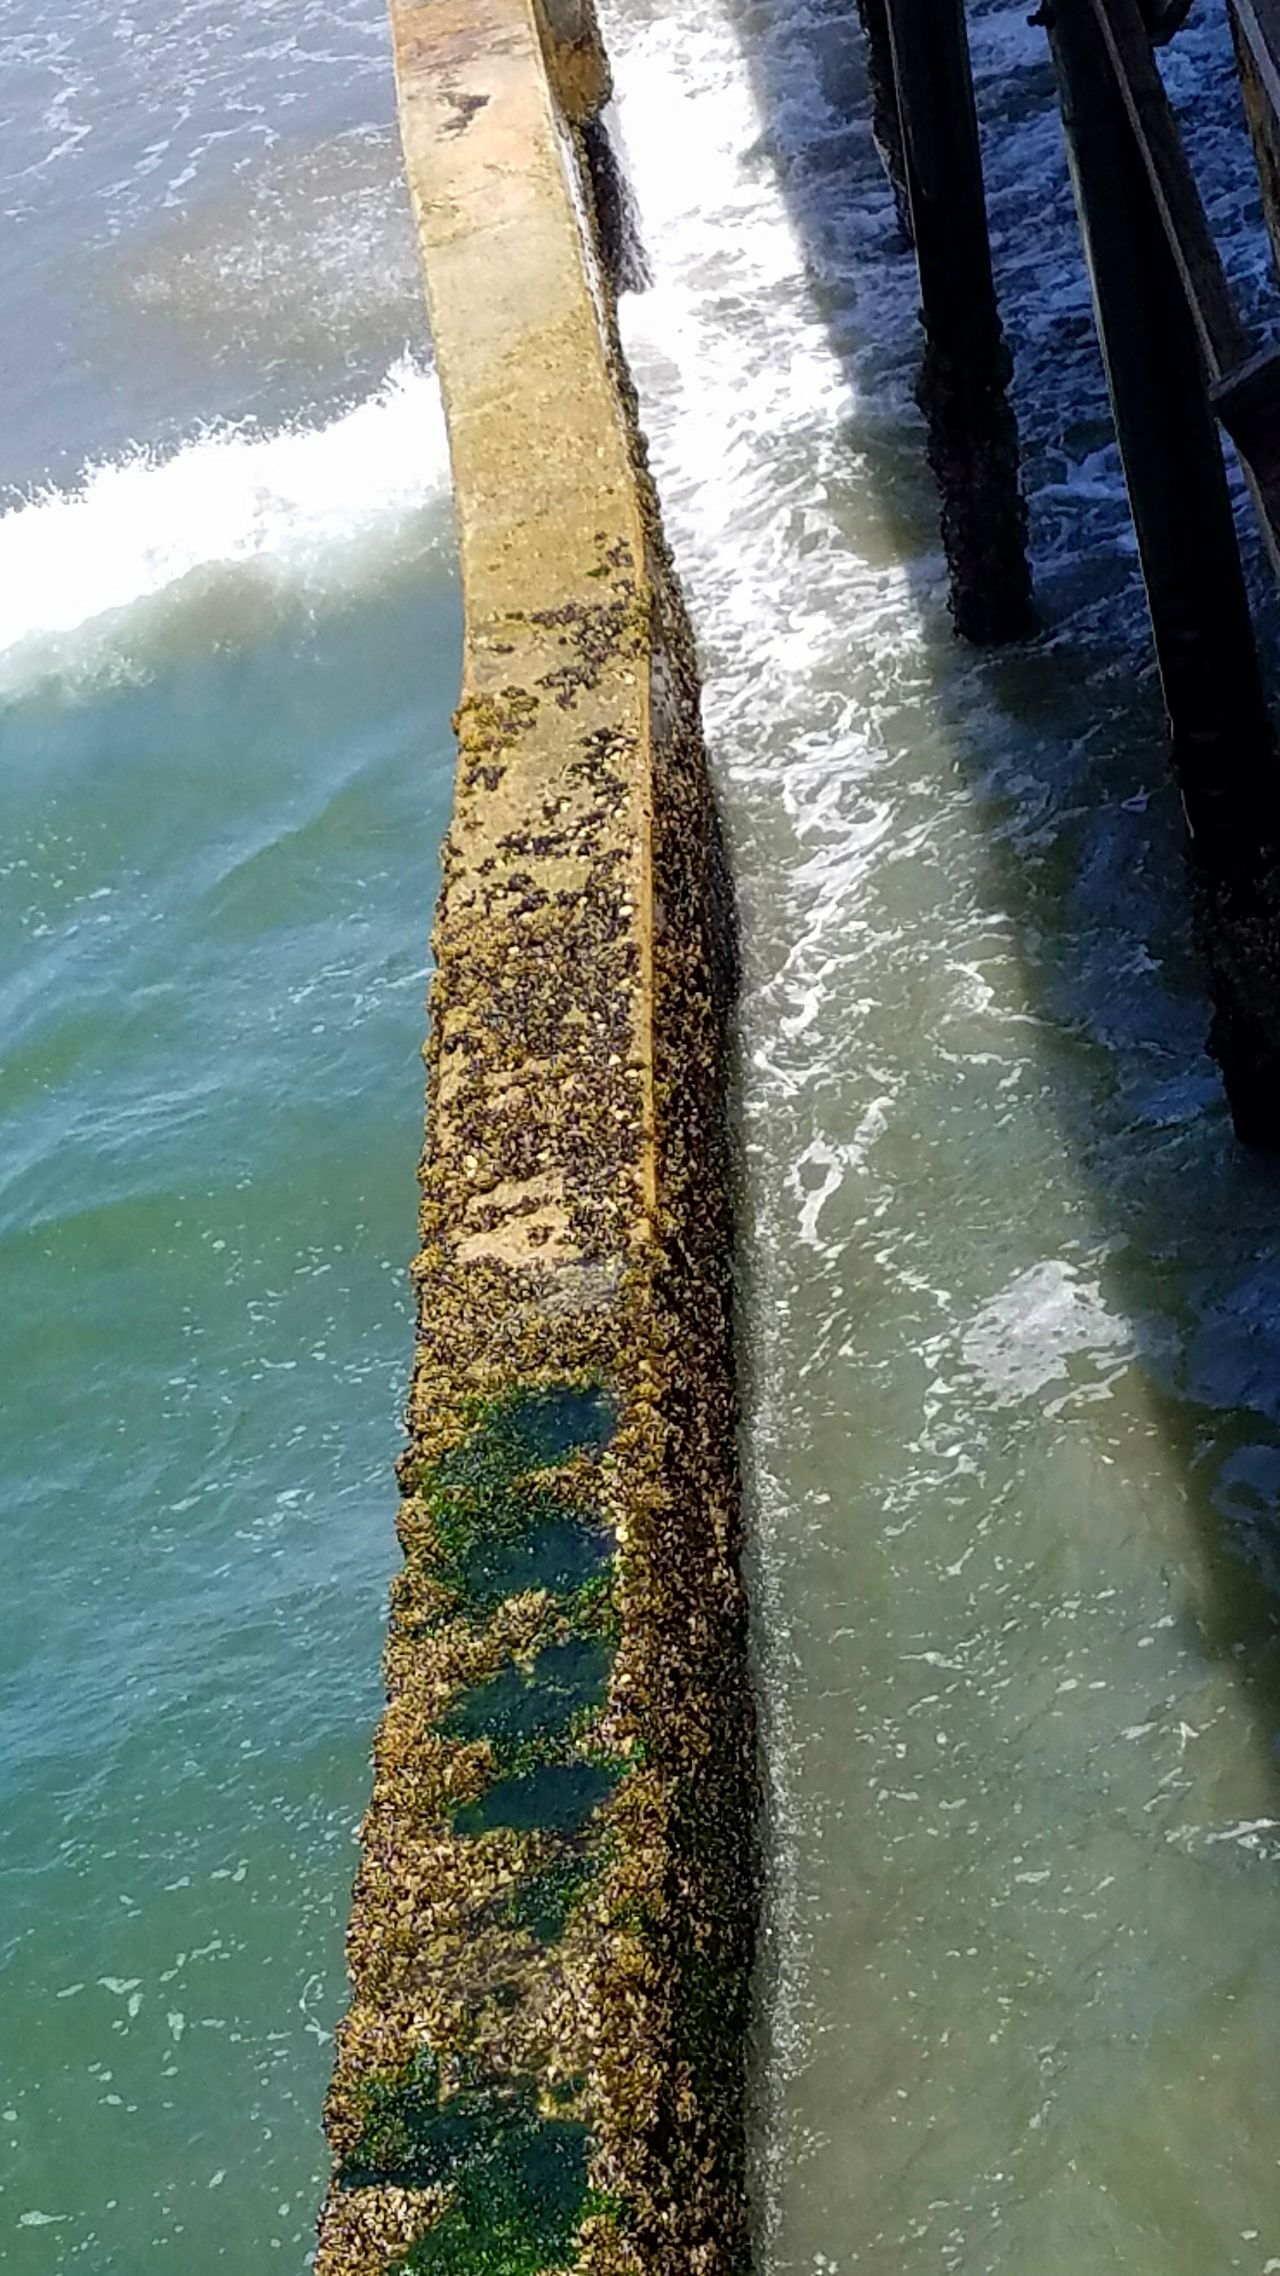 Break Wall Ocean Art Is Everywhere Lines Natural Beauty Outdoors Water No People Sea Copy Space Meditation Peaceful Wood Pier Angle Minimalism Abstract Light Inspirational Traquility Multicolor Faded Contrast Gold Algea Moss